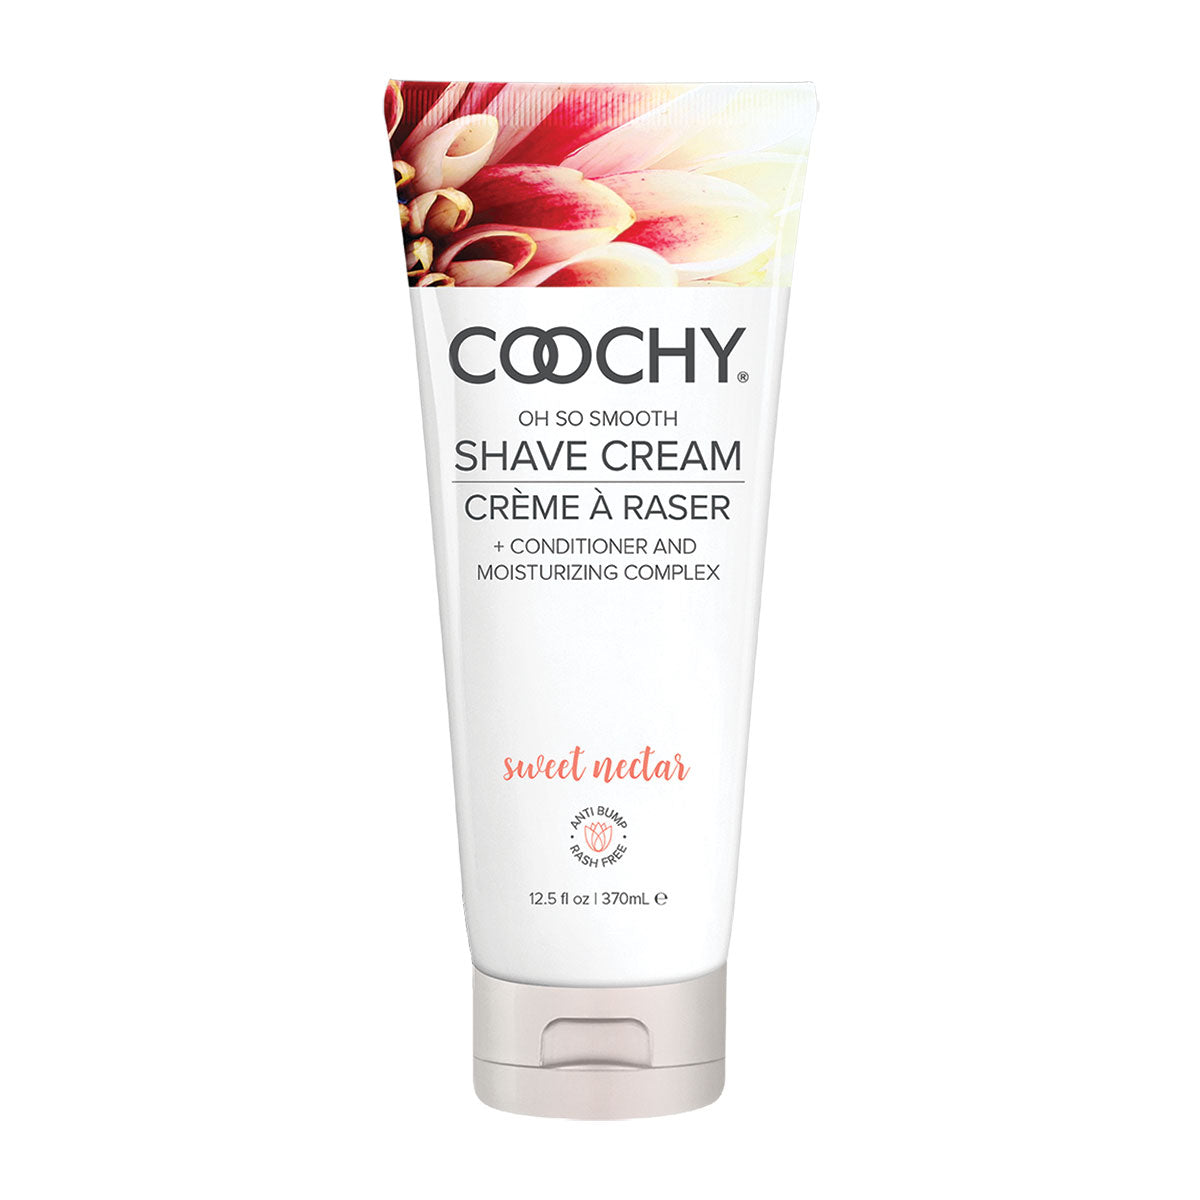 Coochy Shave Cream 12.5oz - Sweet Nectar